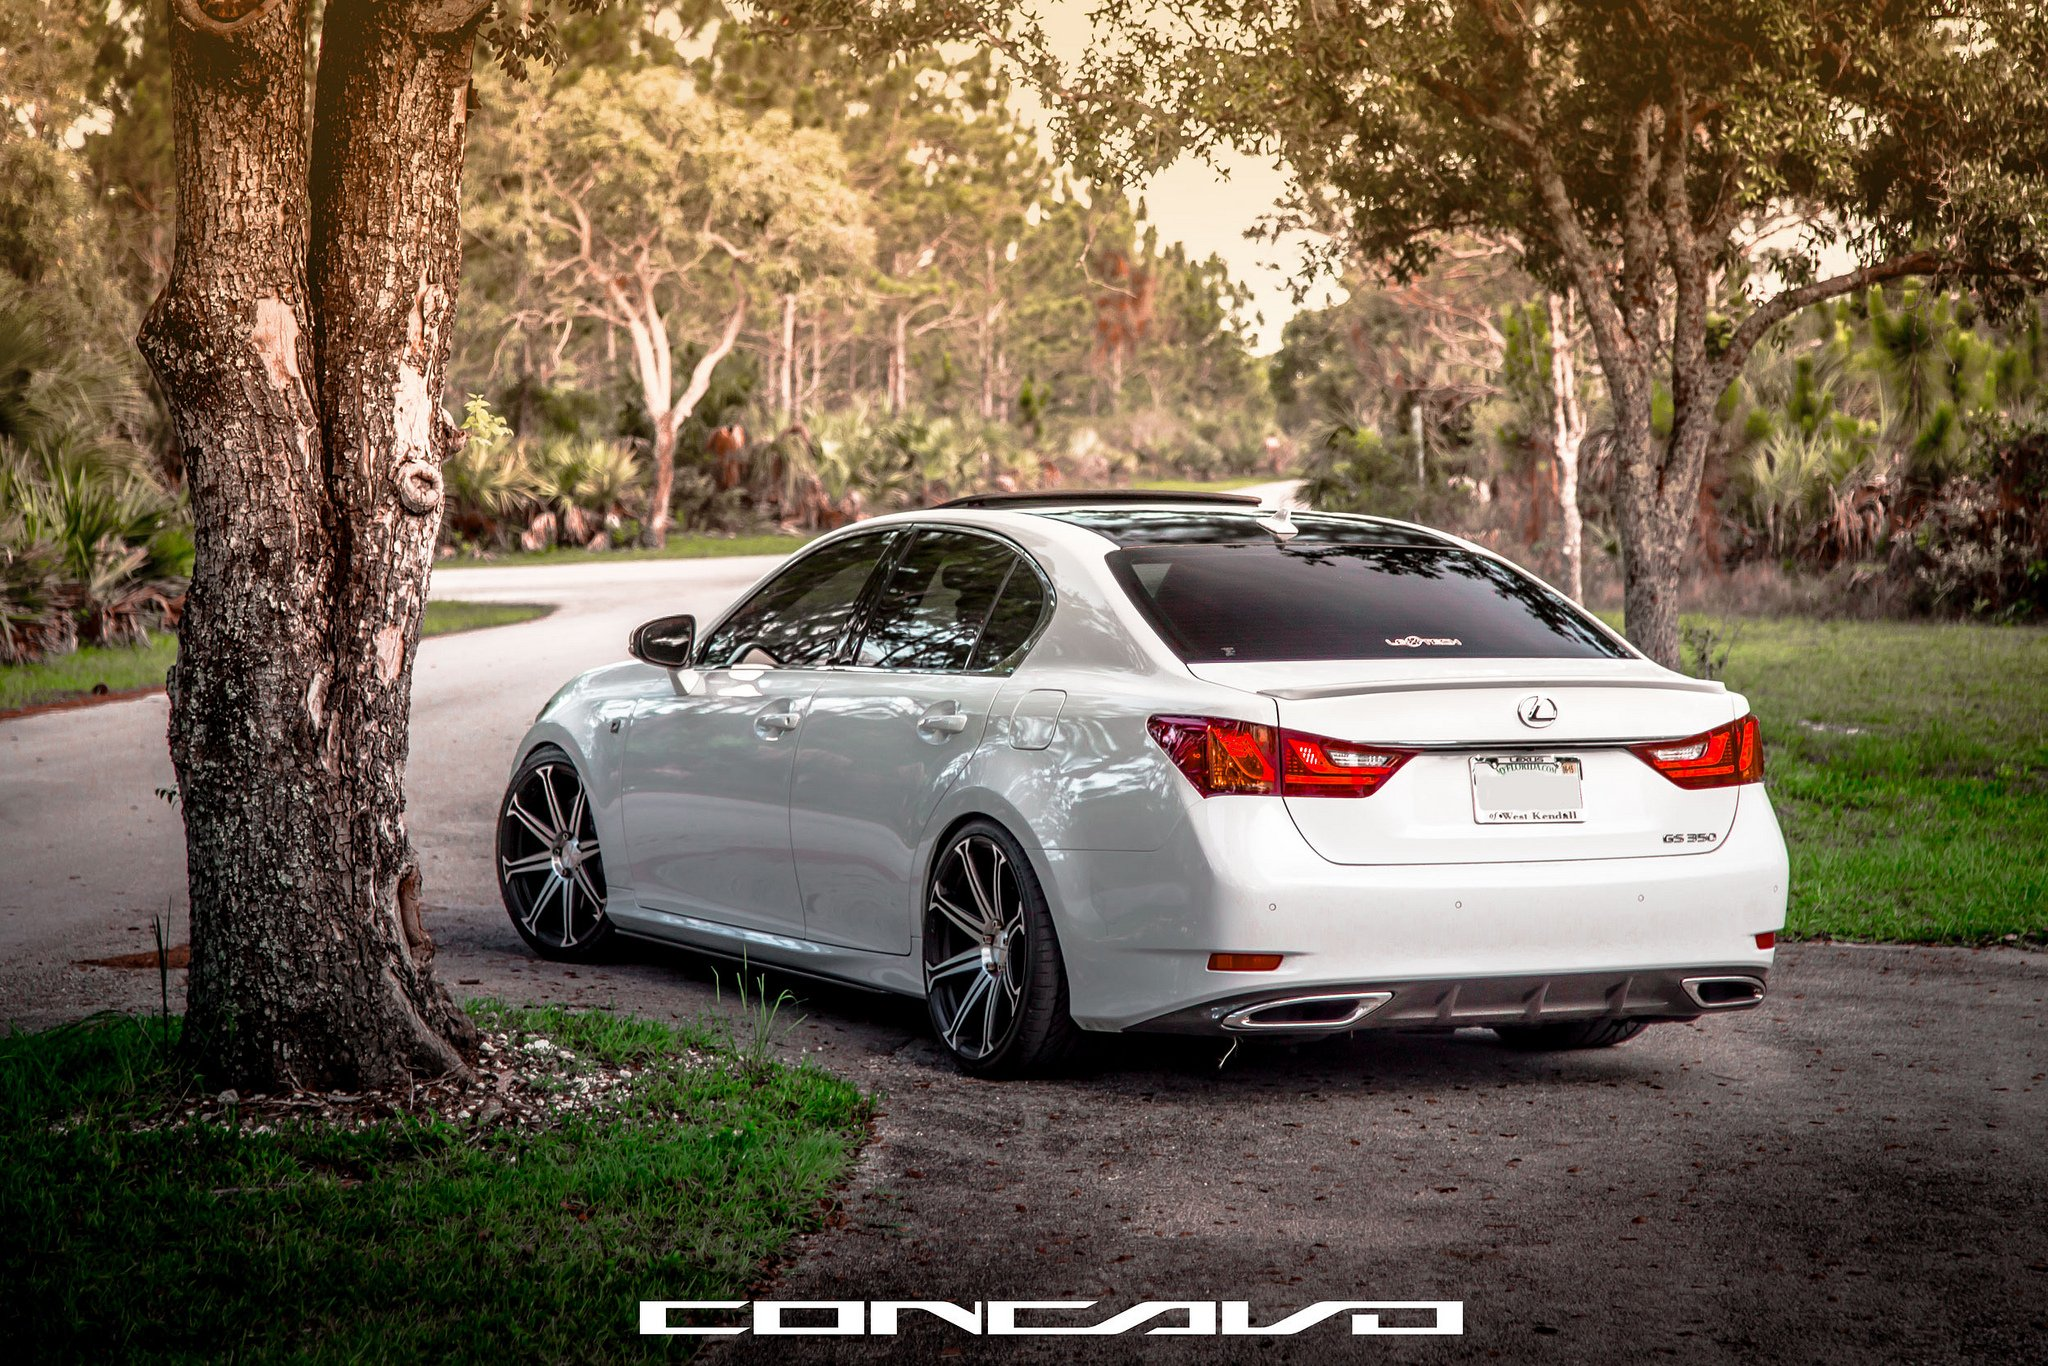 Lexus GS350 F-Sport Tuning concavo wheels cars wallpaper ...